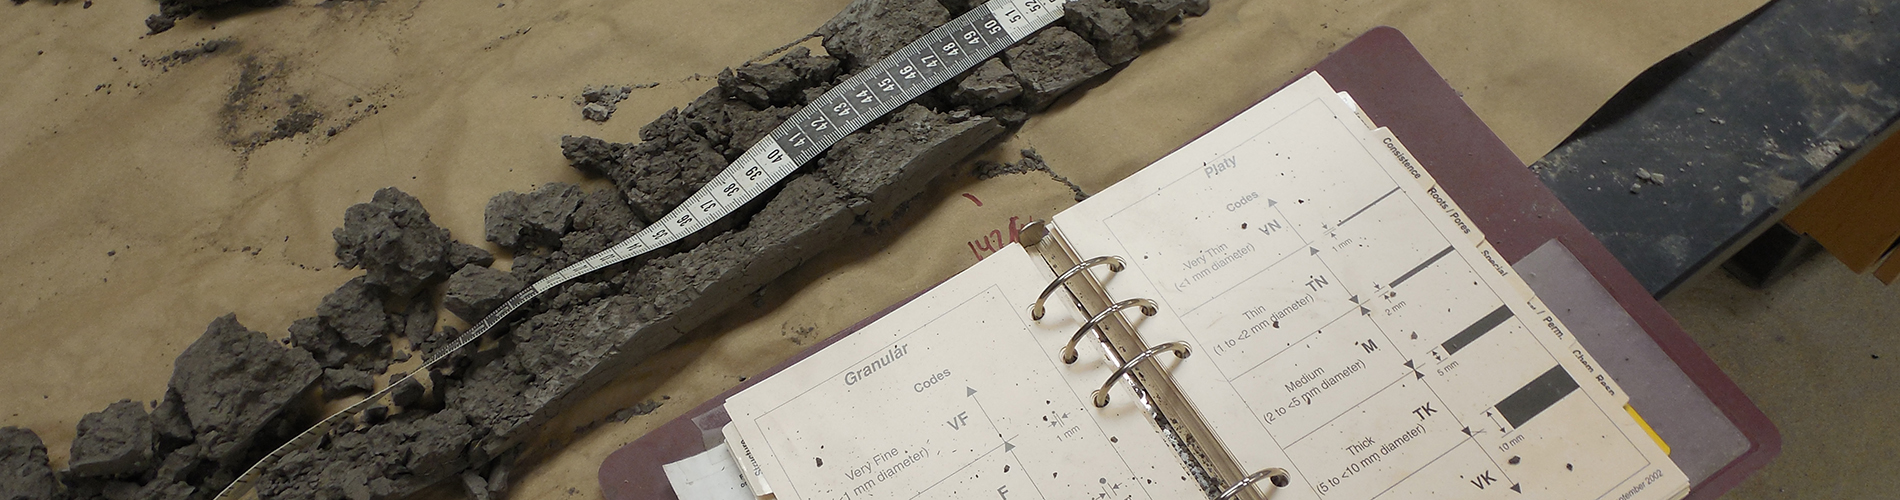 Soil Core and Book